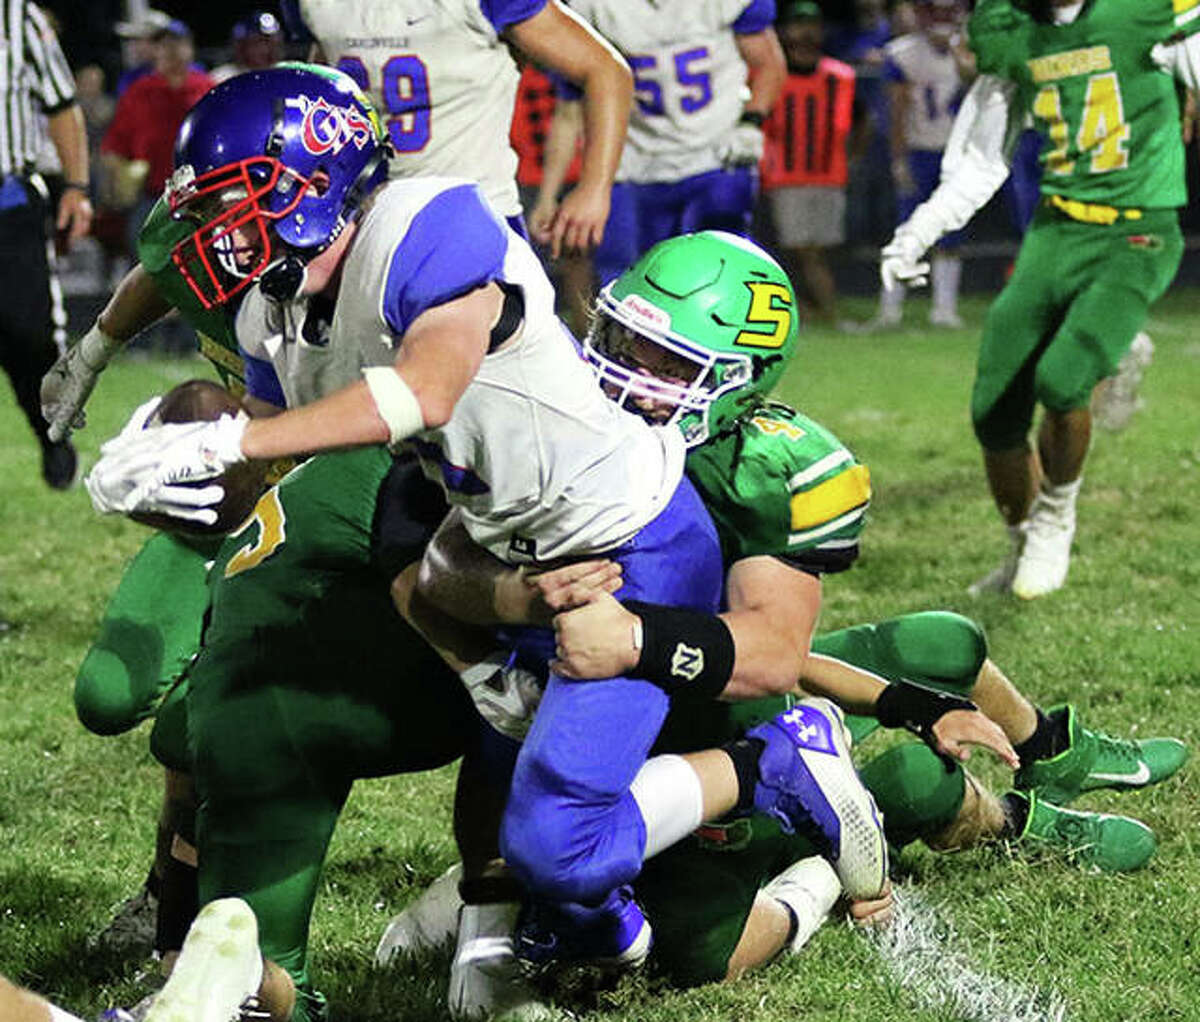 Carlinville's Jake Schwartz is tackled by Southwestern's Blake Funk in a South Central Conference football game Friday night at Knapp Field in Piasa.